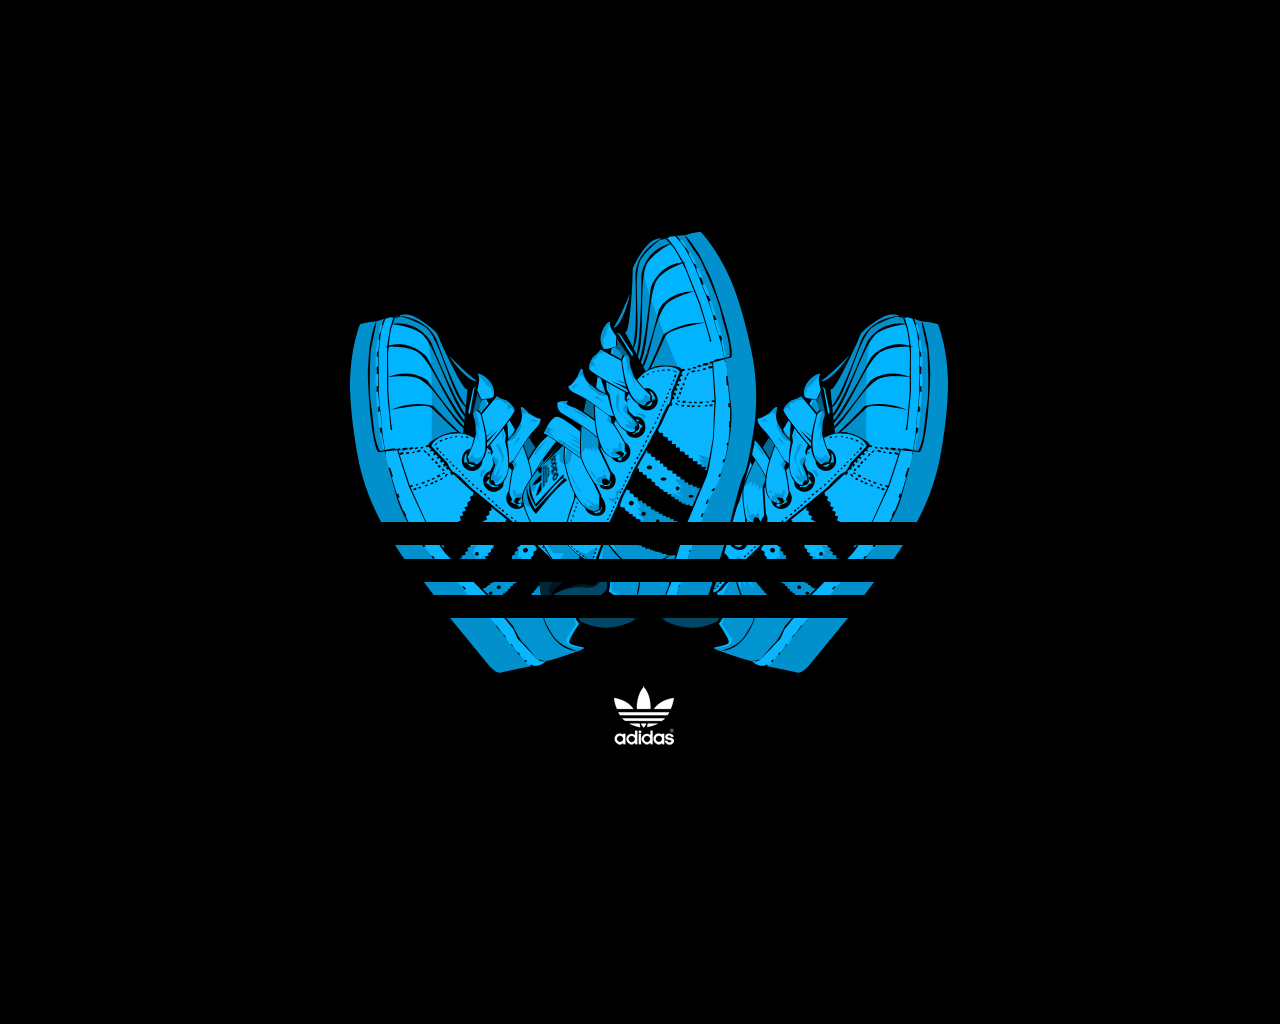 adidas logo hd wallpapers imagebankbiz